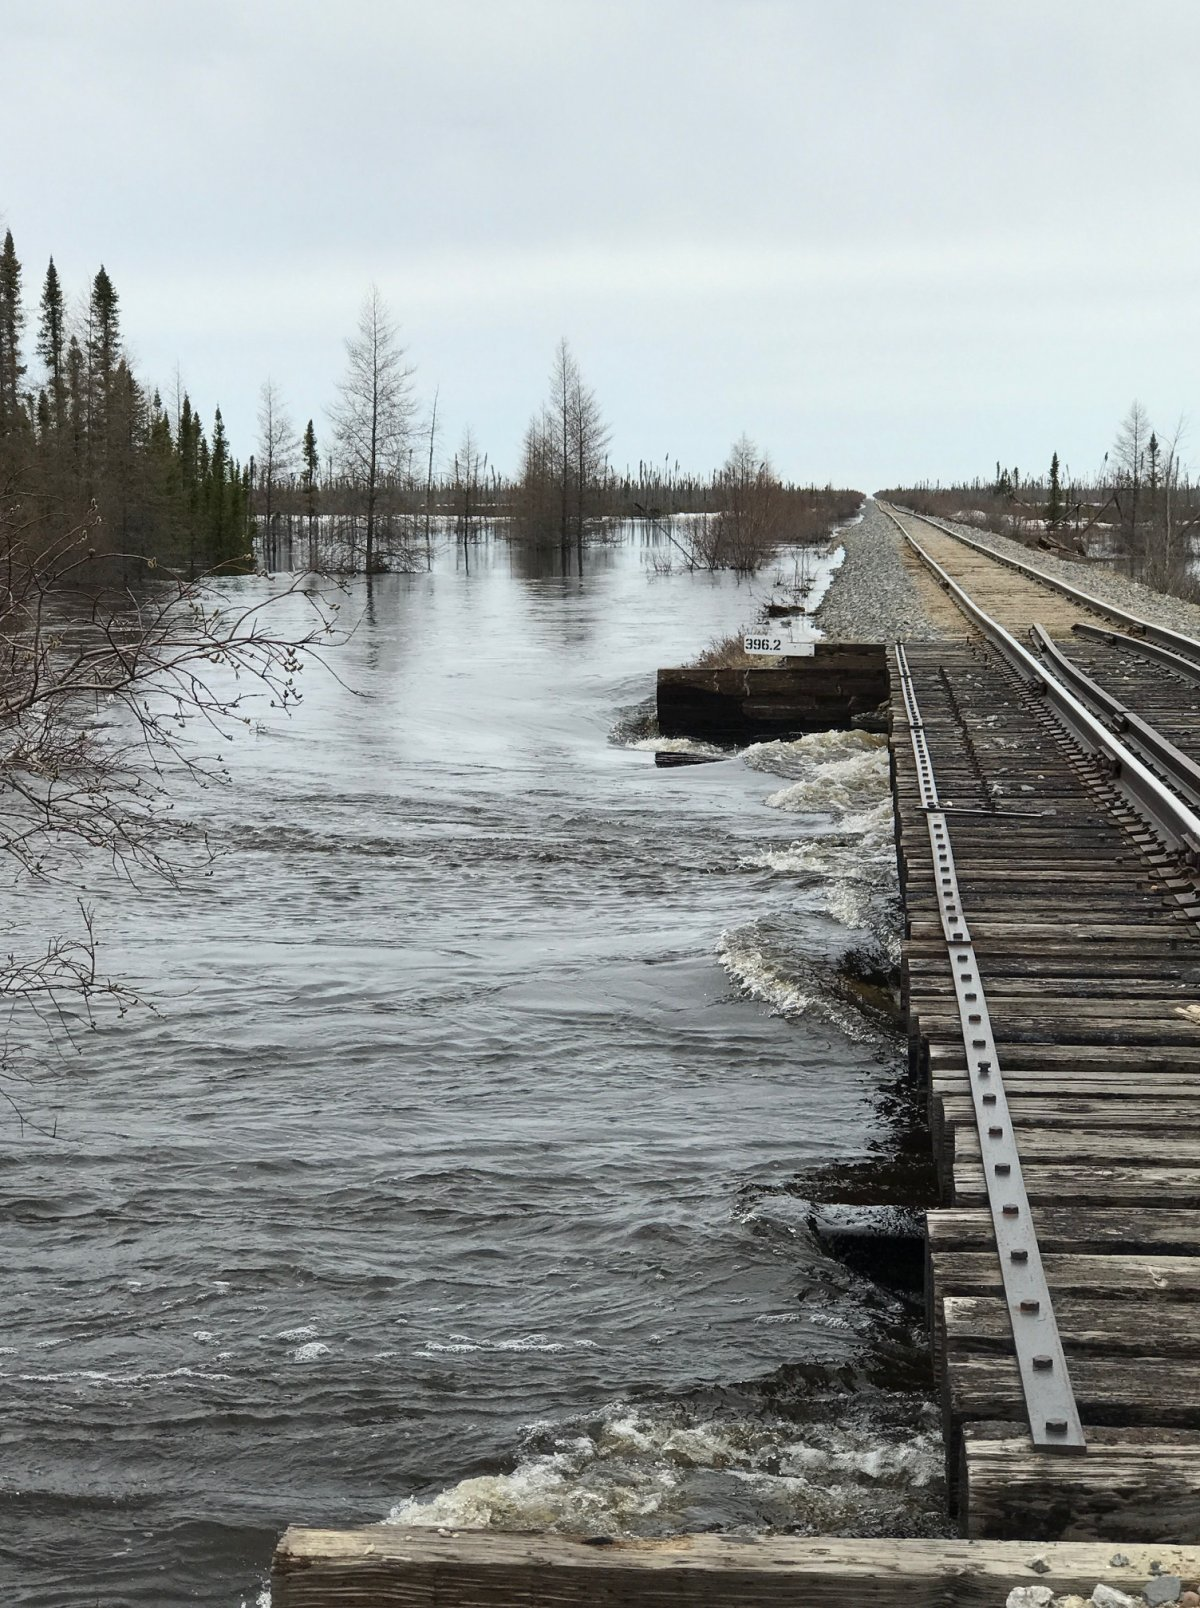 Flood waters have caused extensive damage to much of the railway that provides supplies to Churchill.